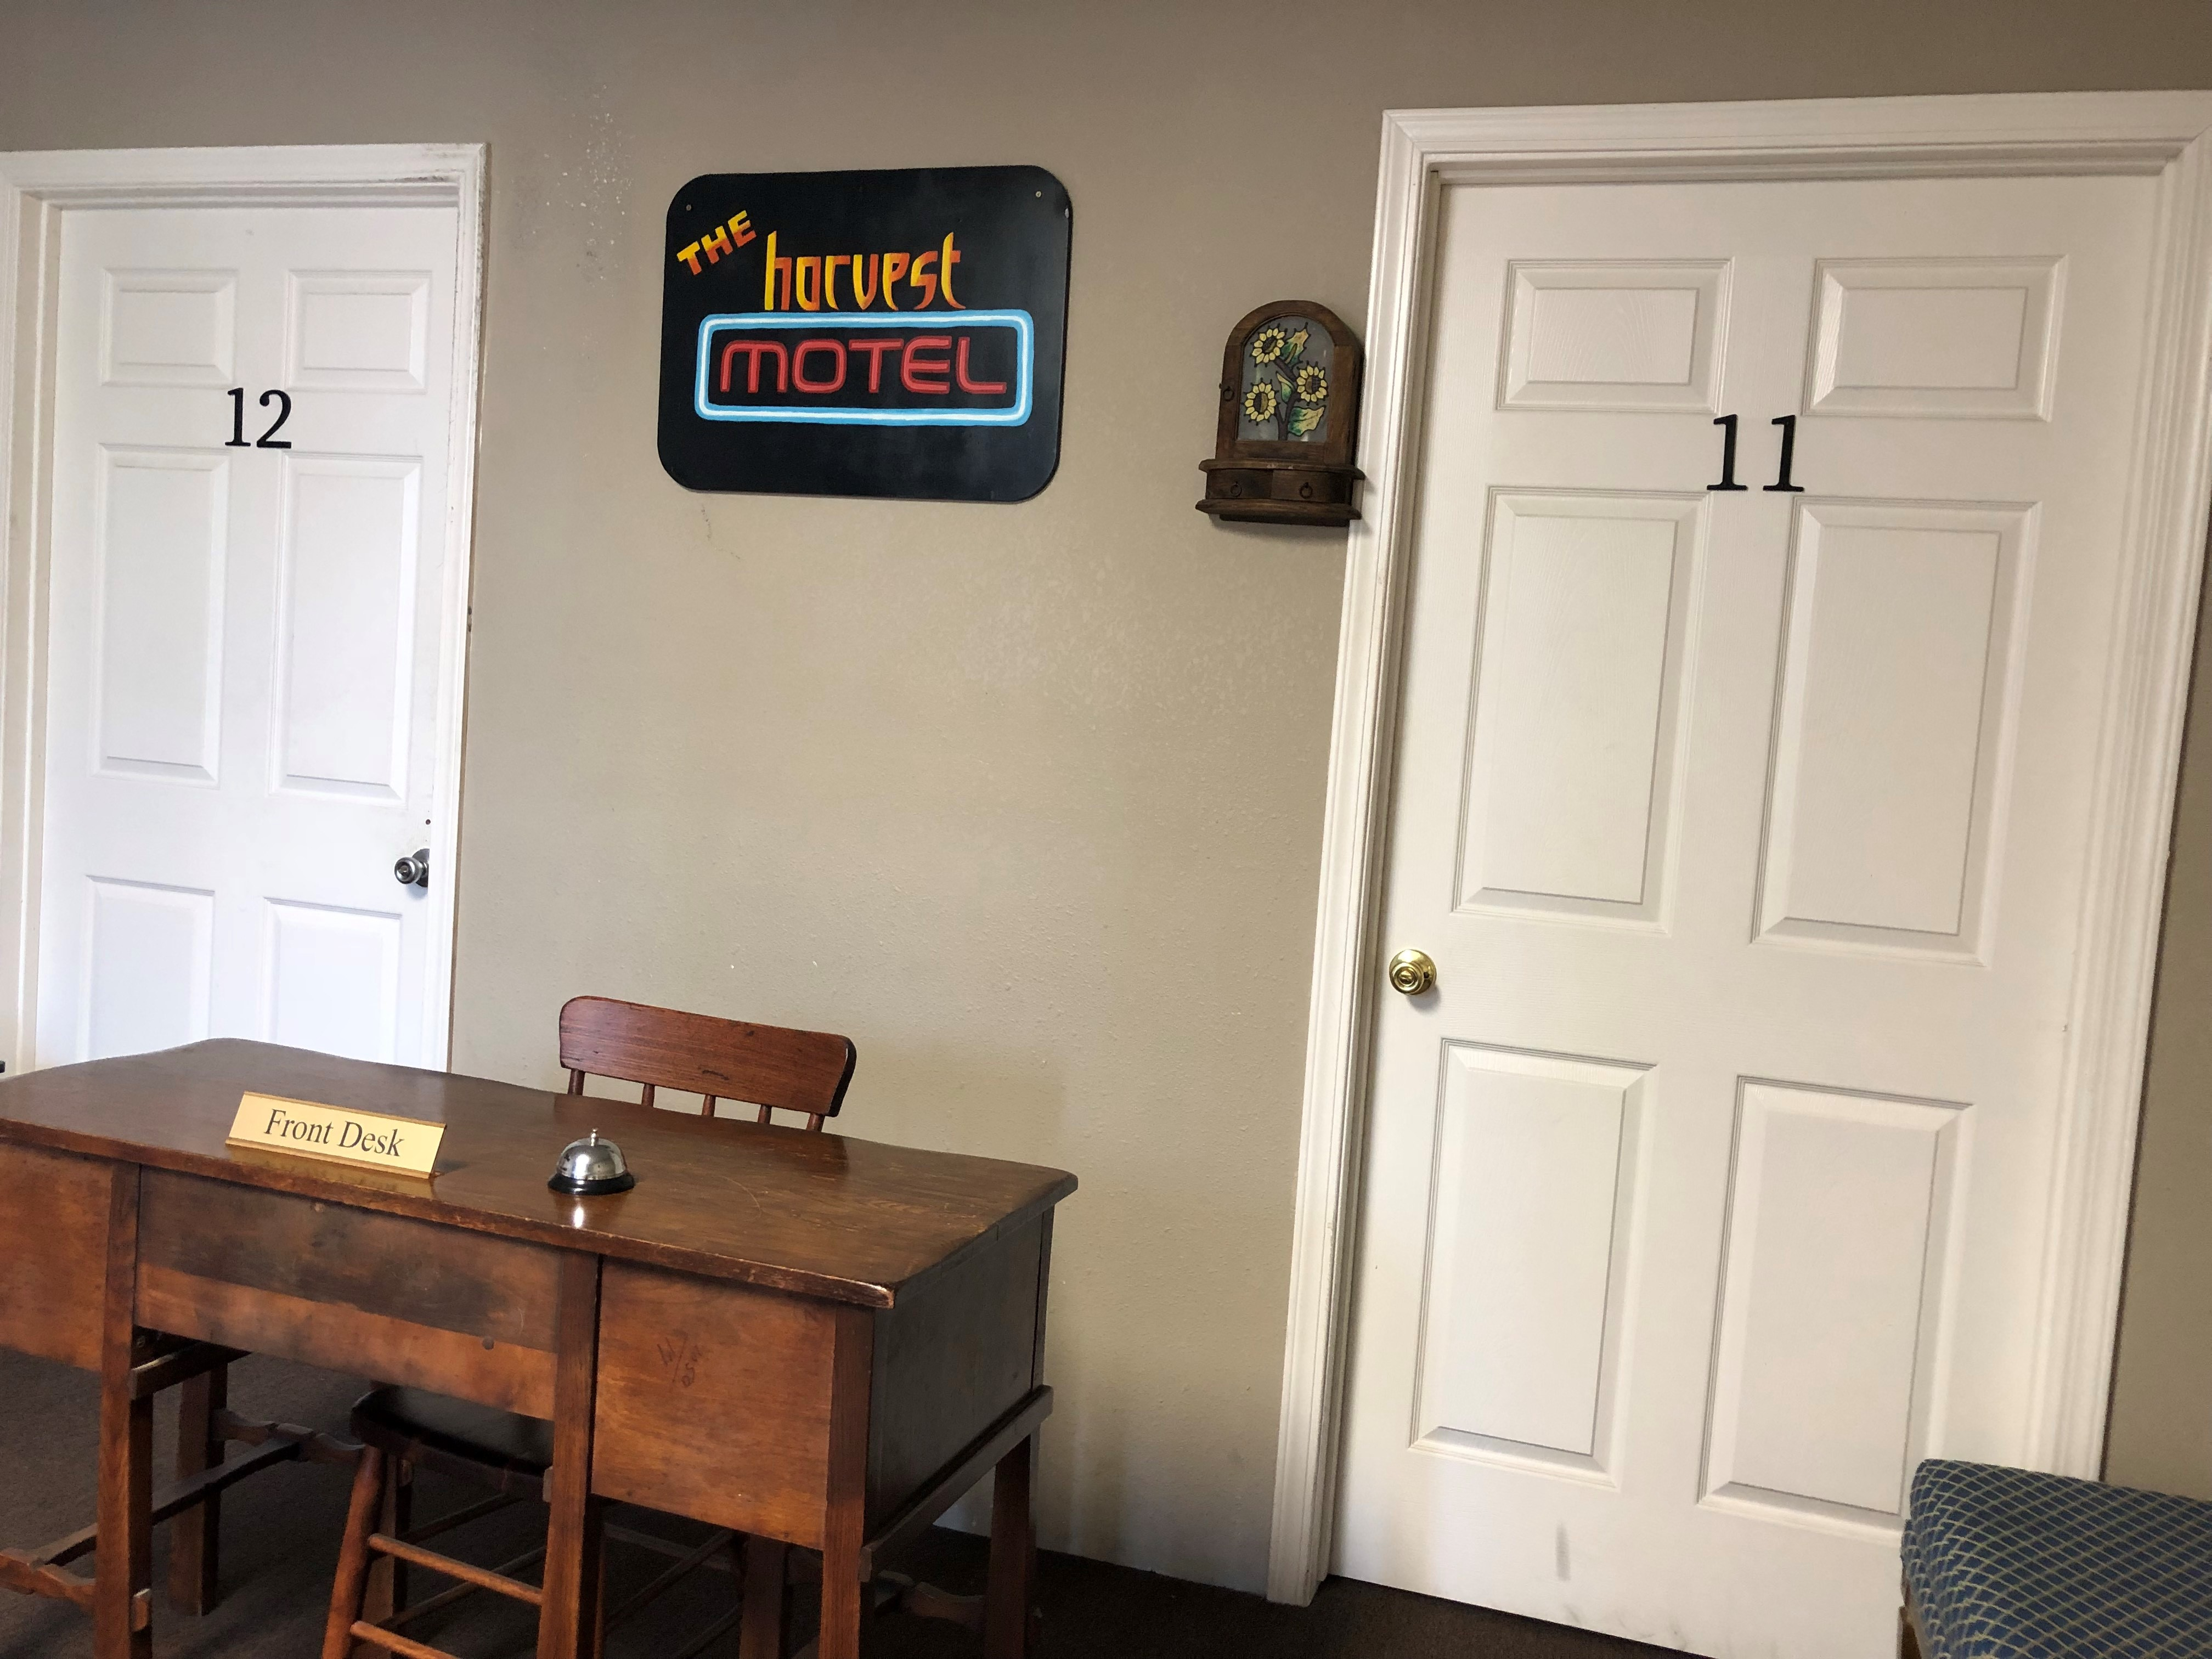 Review: 3rd Day Escape - Harvest Motel